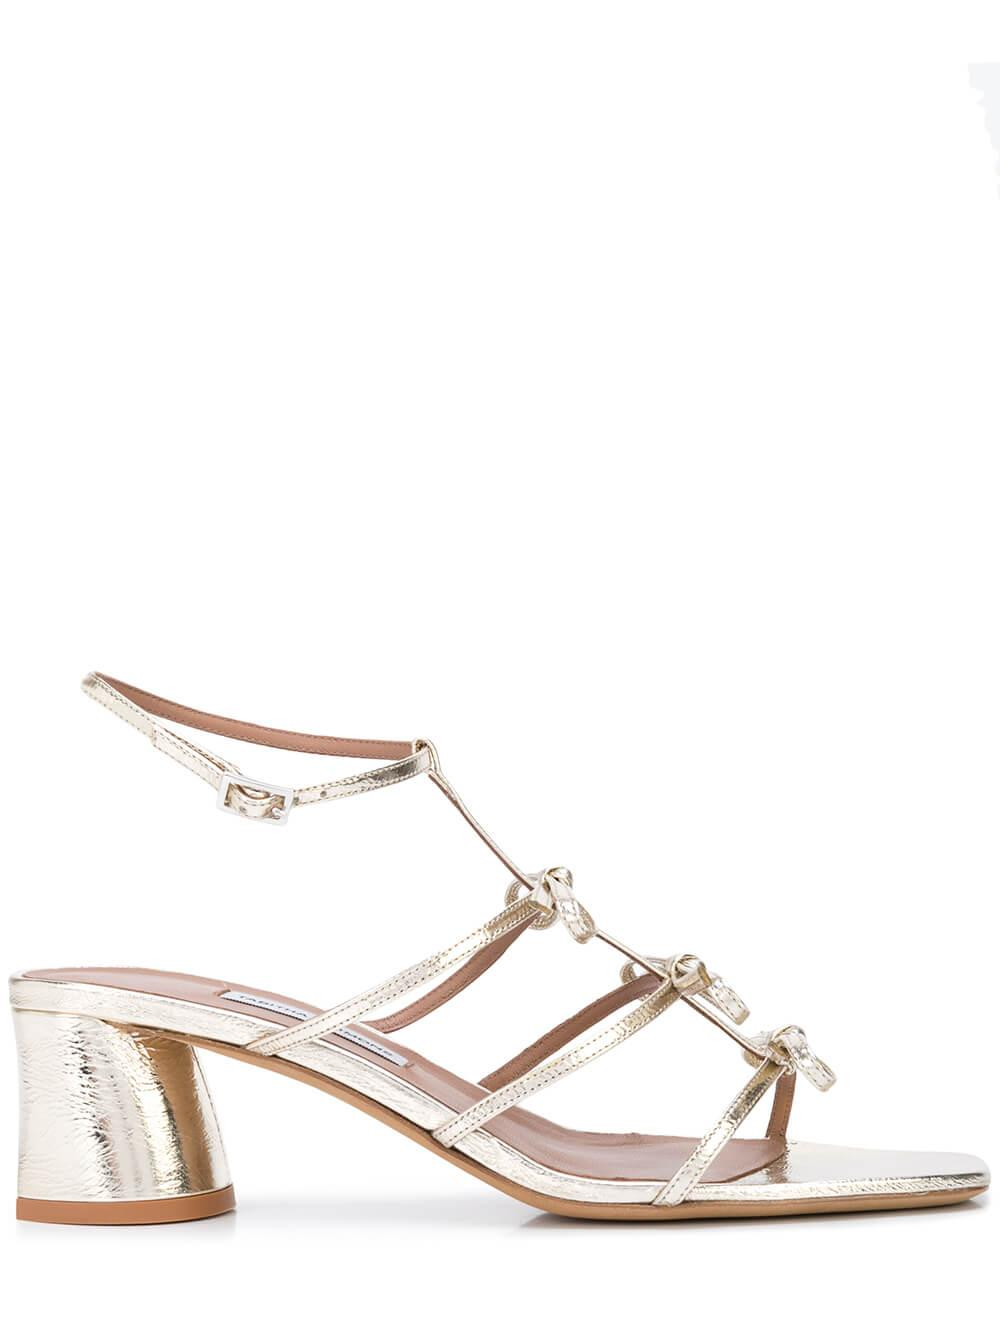 Covie Strappy Block Heel Sandal Item # COVIE